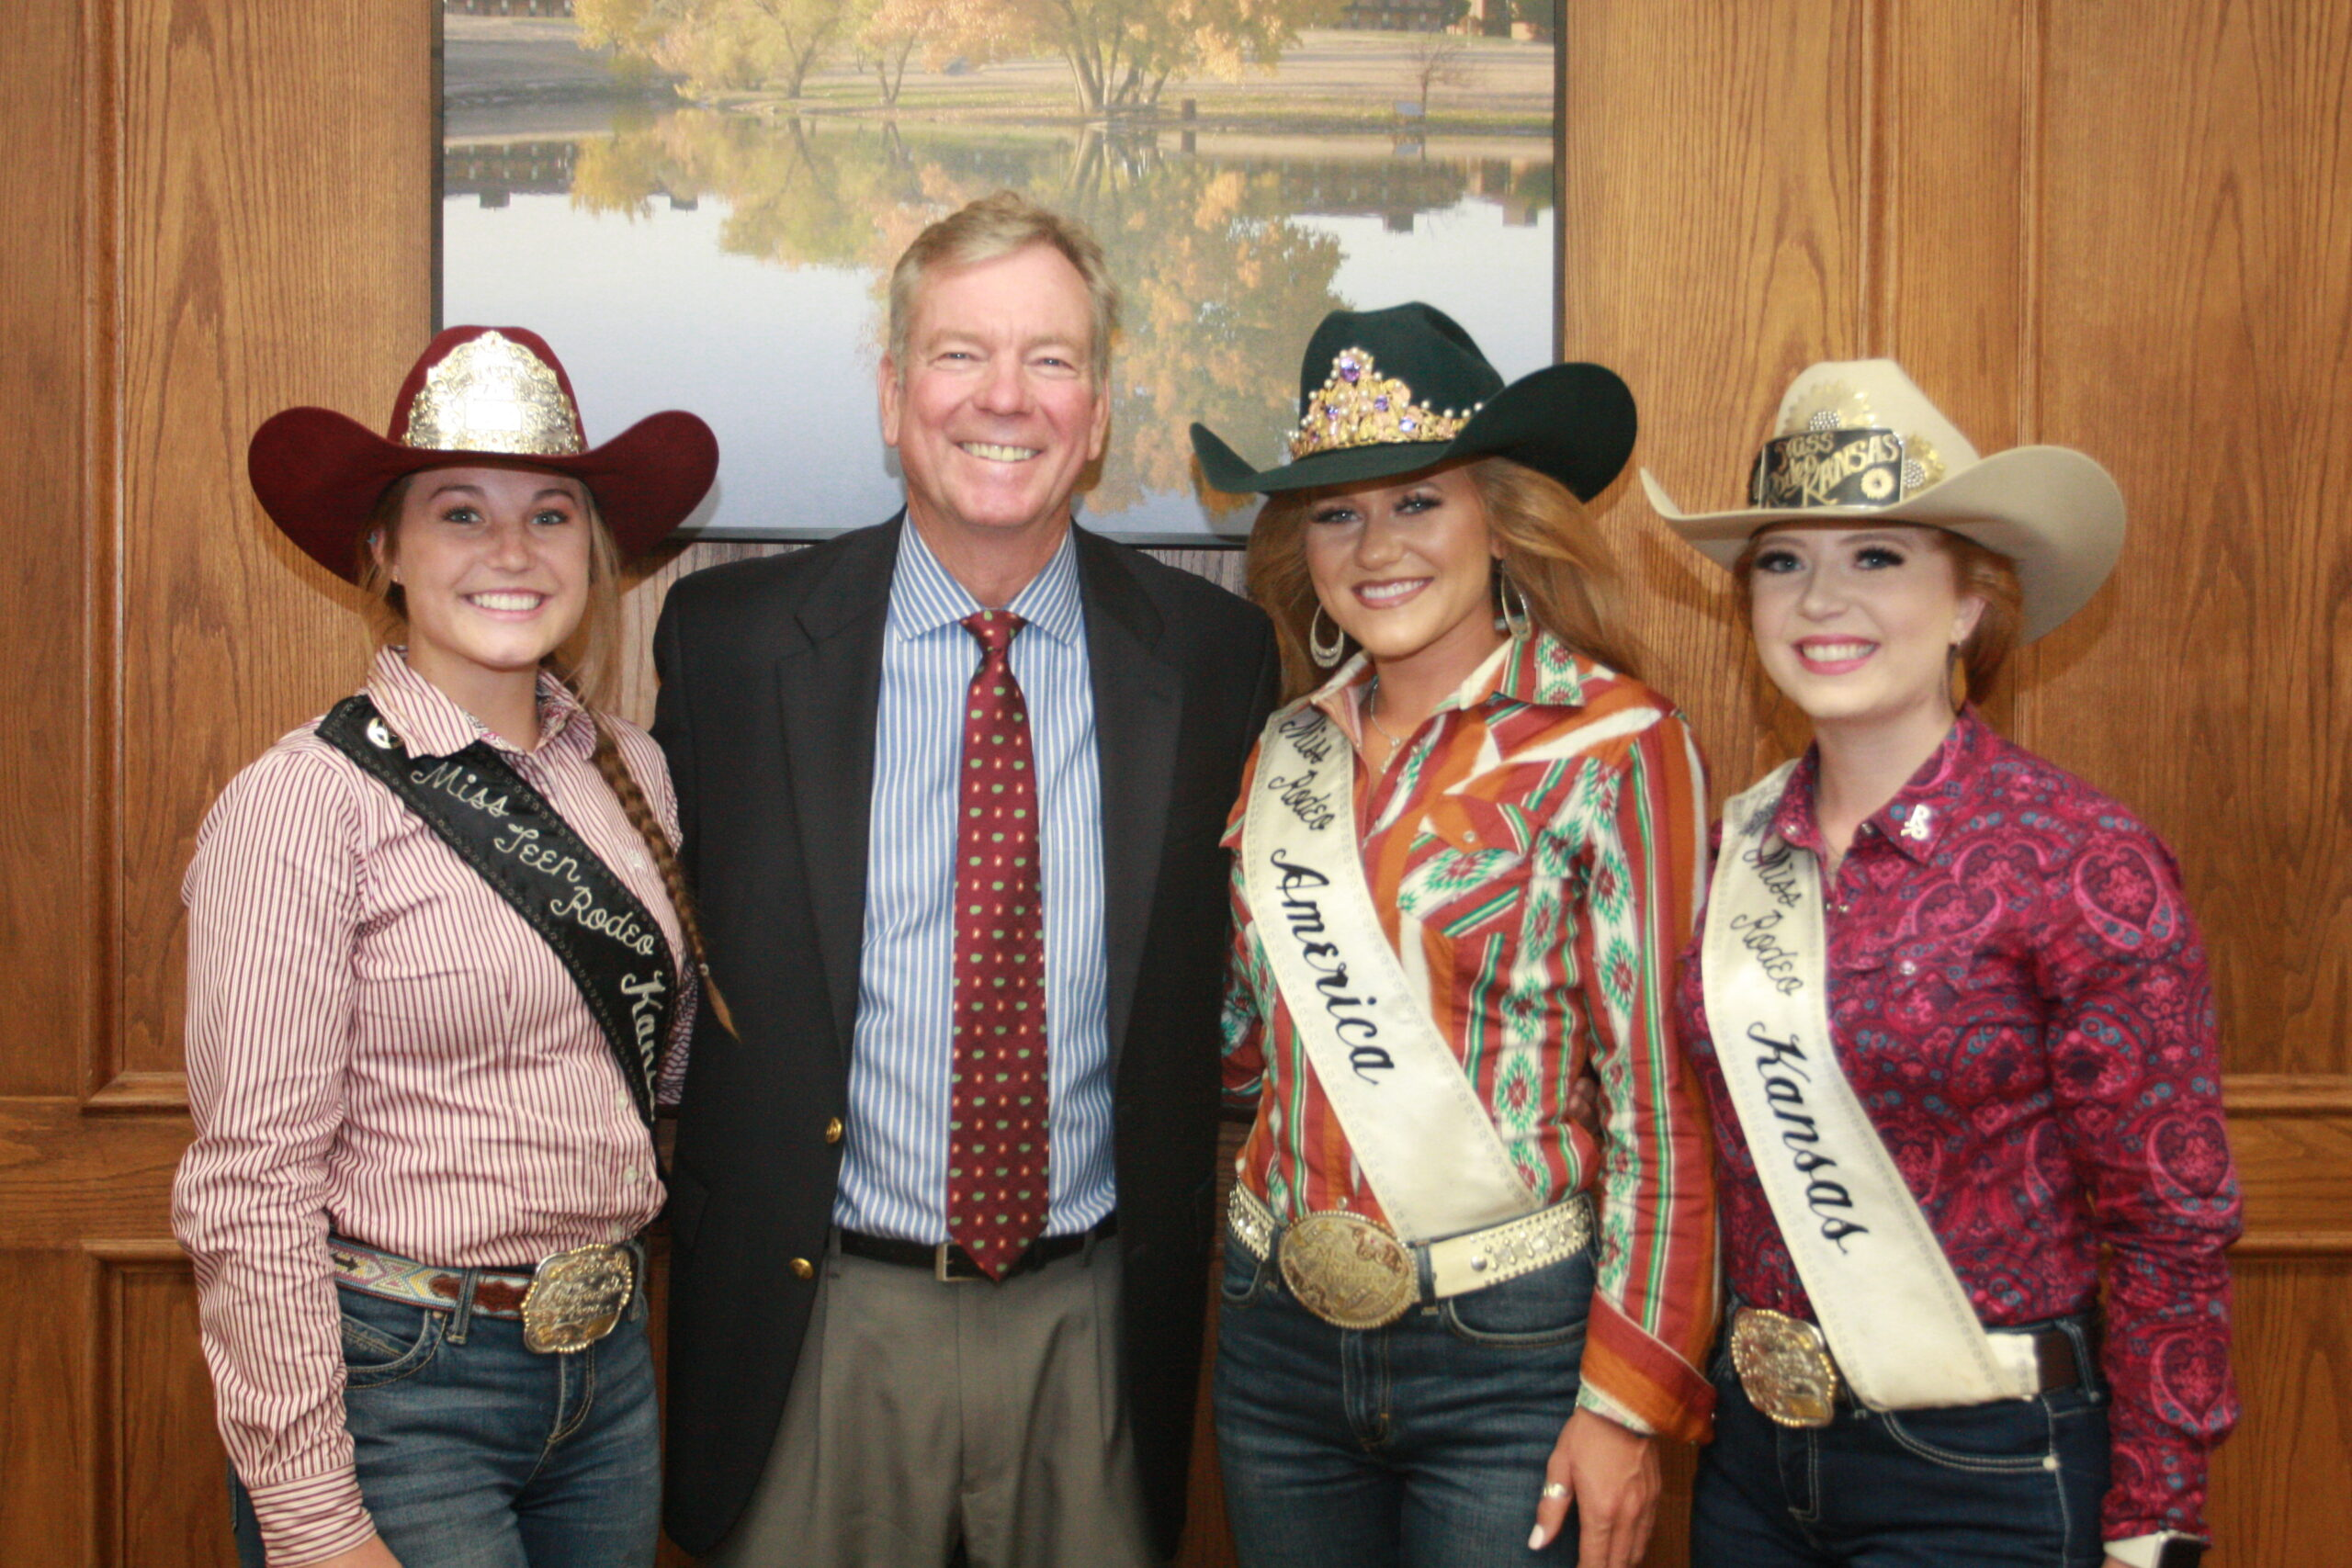 DC3 President, Harold Nolte poses with Miss Rodeo America, Jordan Tierney; Miss Rodeo Kansas, Tiffany McCaffrey; and Miss Teen Rodeo Kansas, Katie Welsh